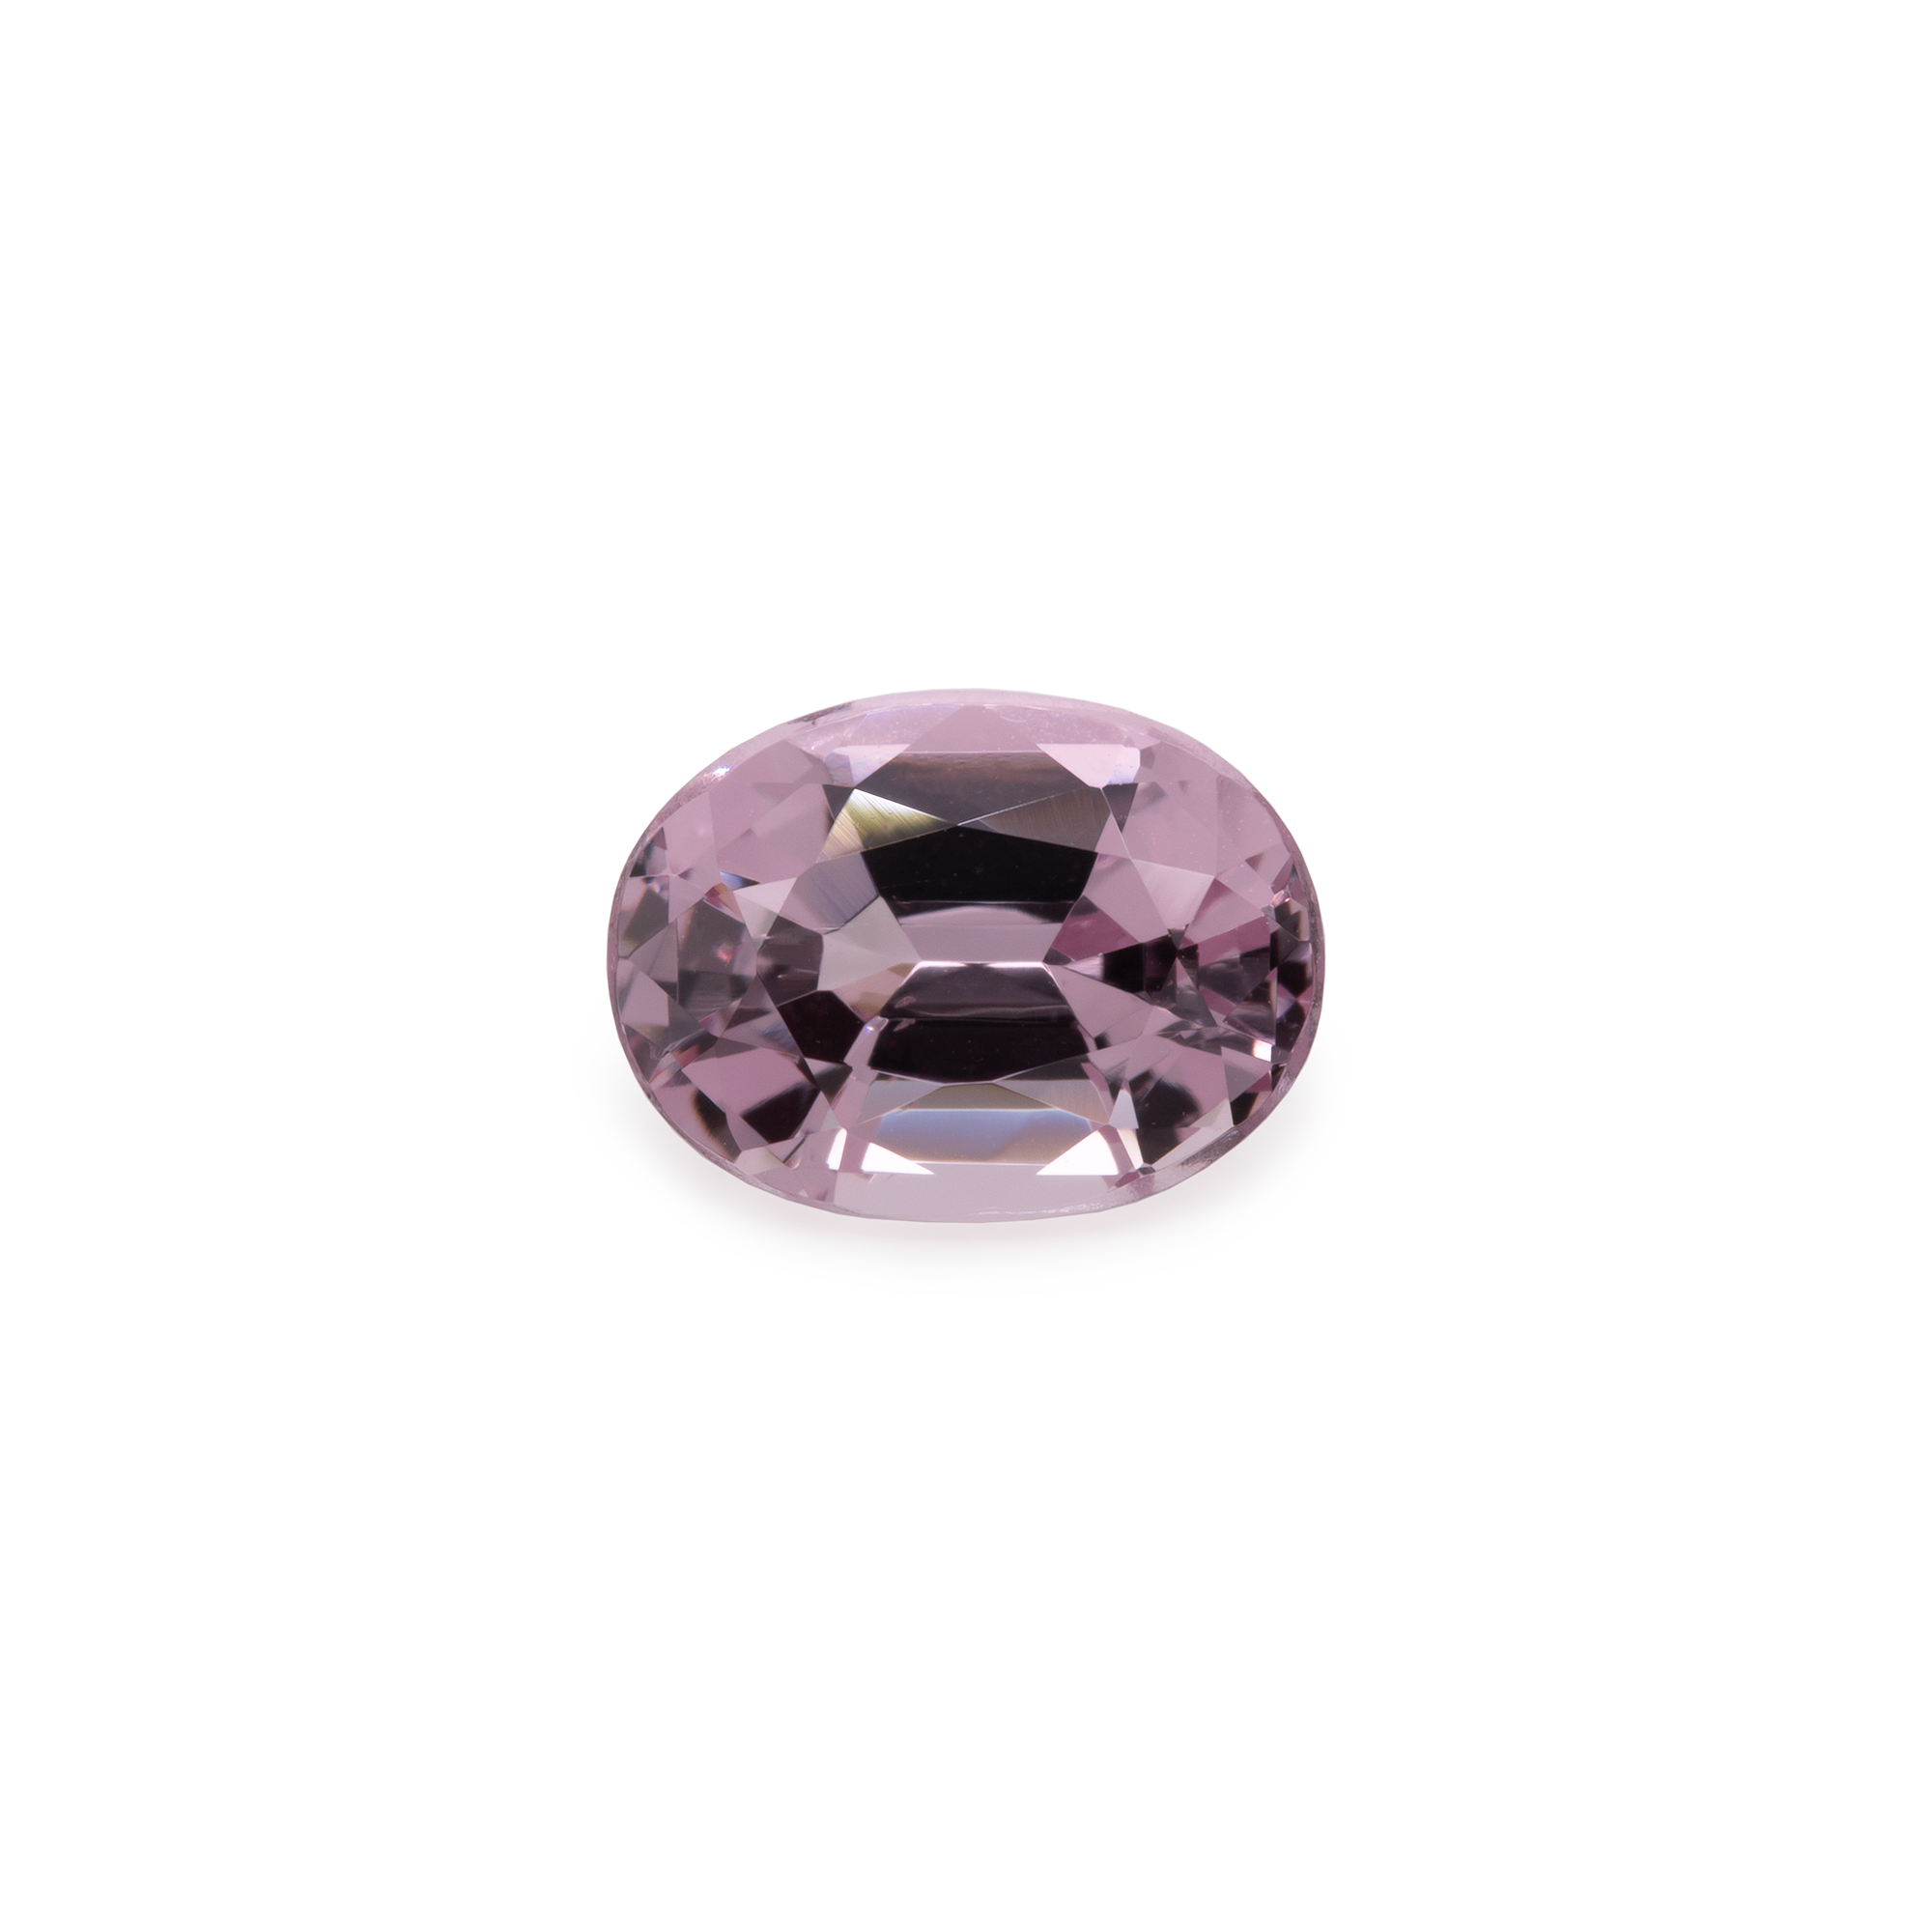 Spinell - rosa, oval, 7,9x5,87 mm, 1,49 cts, Nr. SP70001